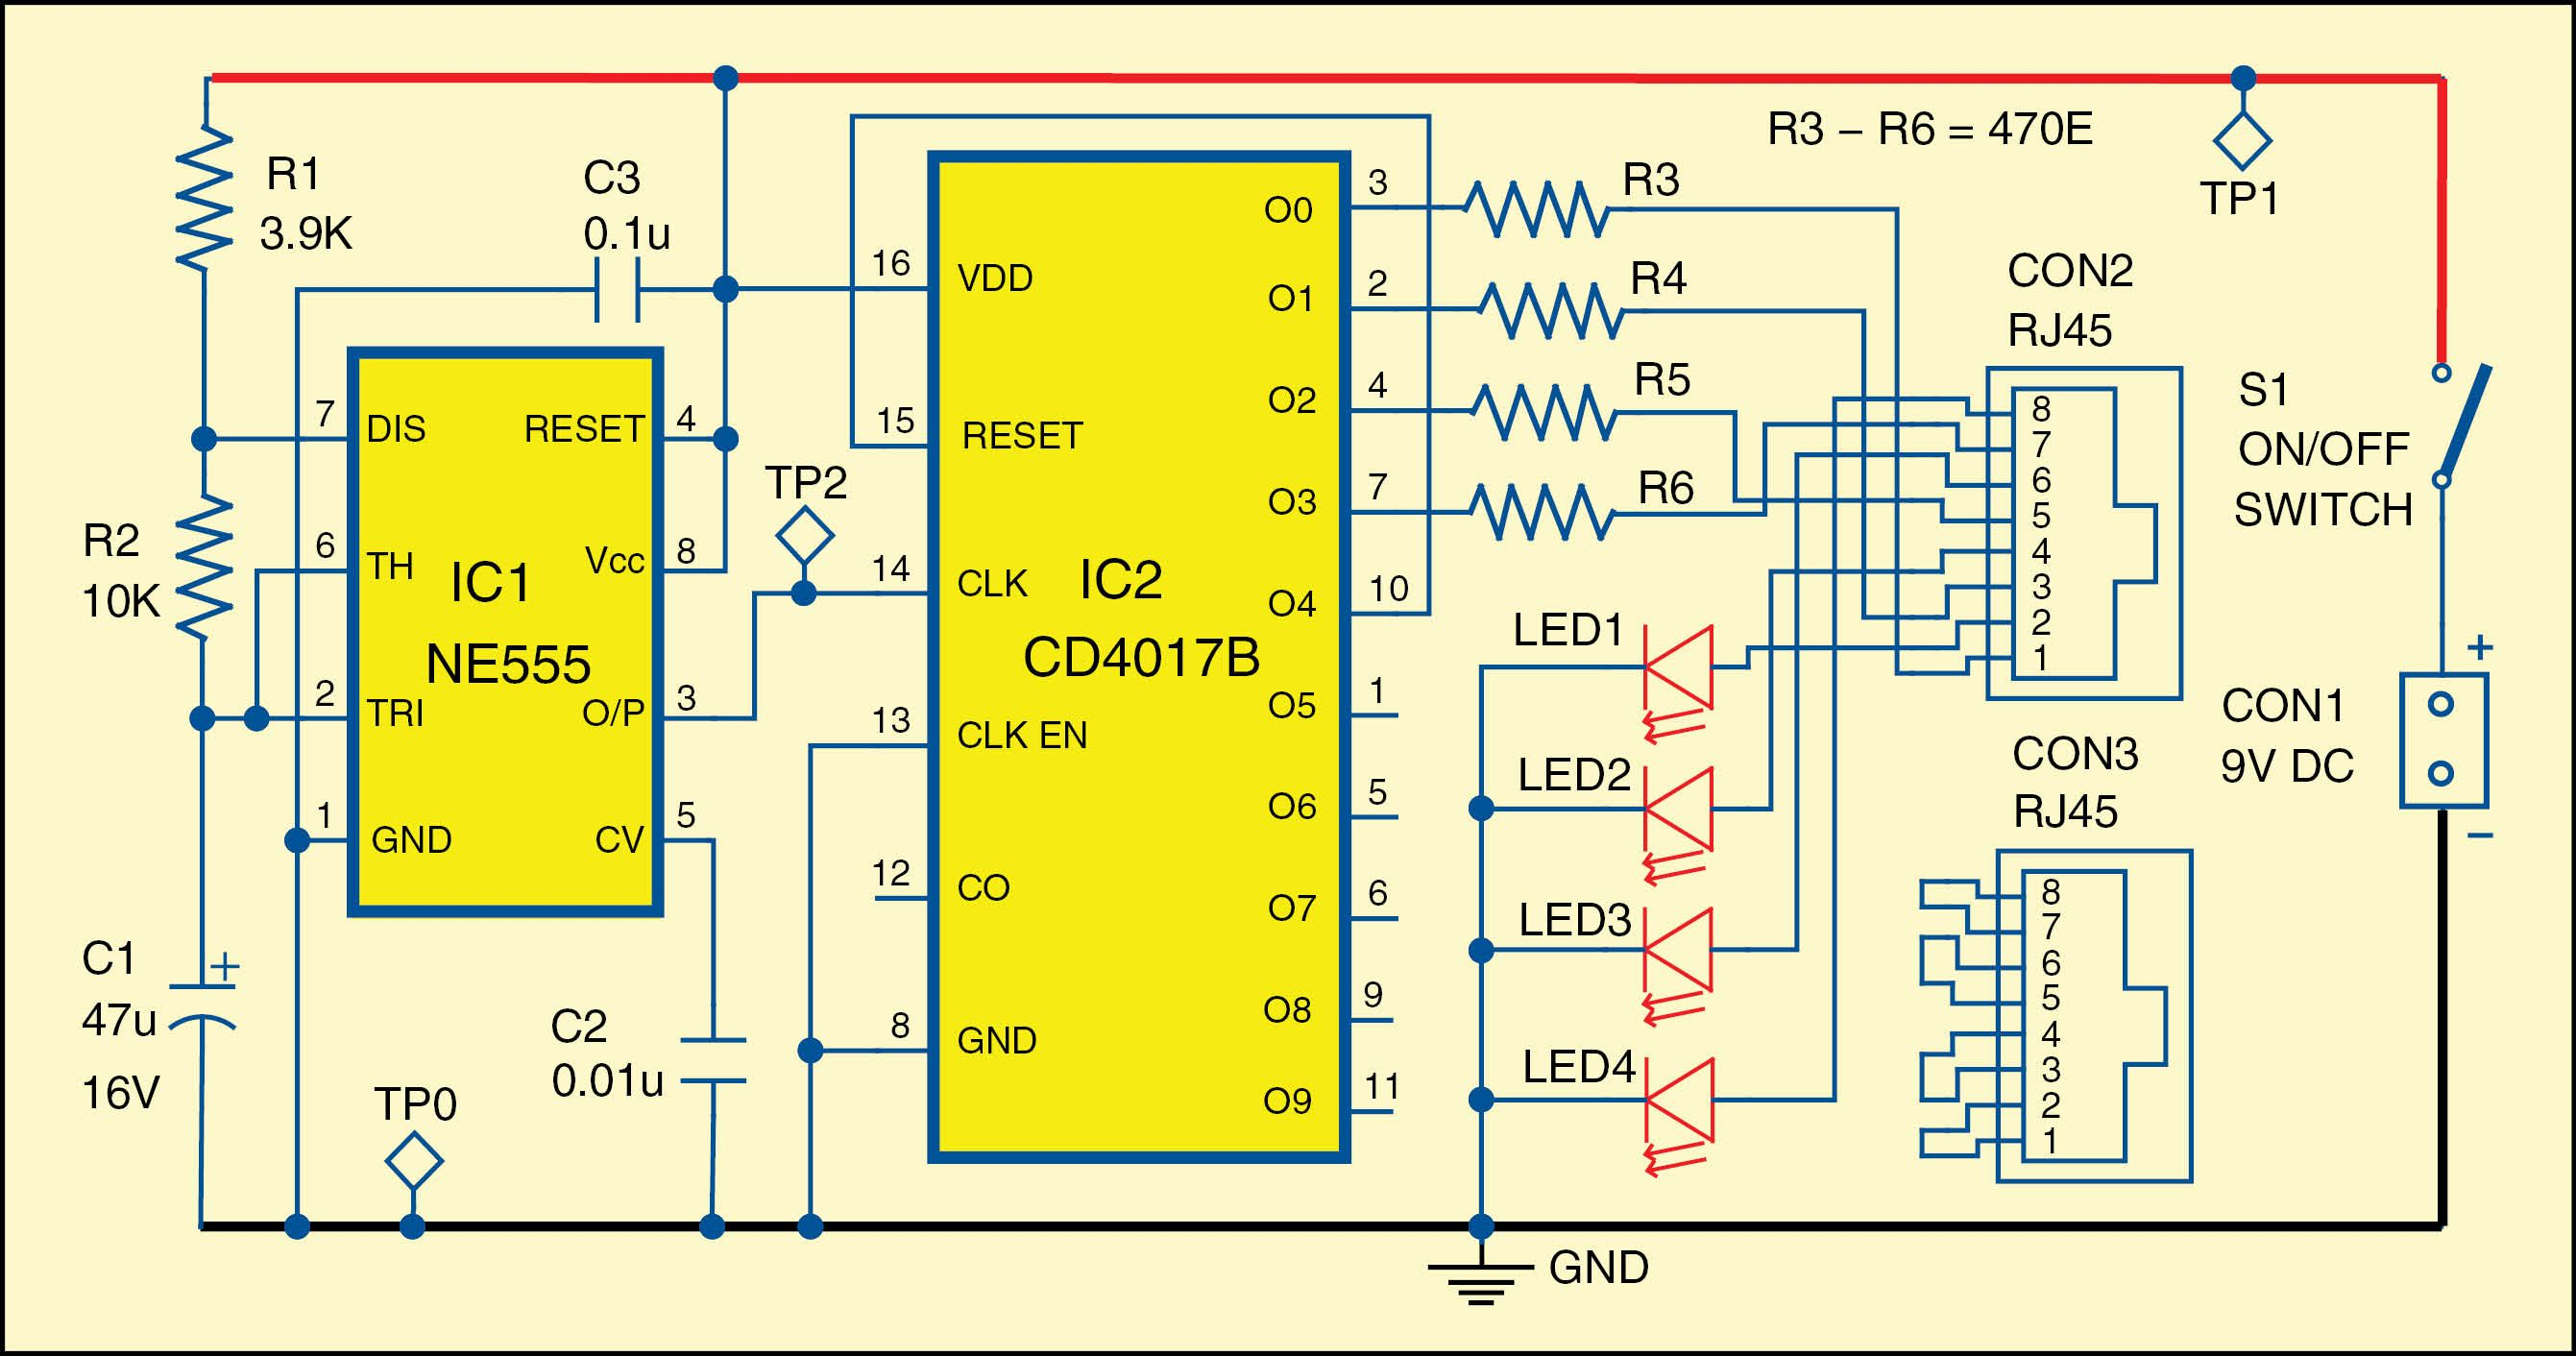 medium resolution of rj45 network cable tester circuit schematic wiring diagram show cable tester circuit moreover diagram of a